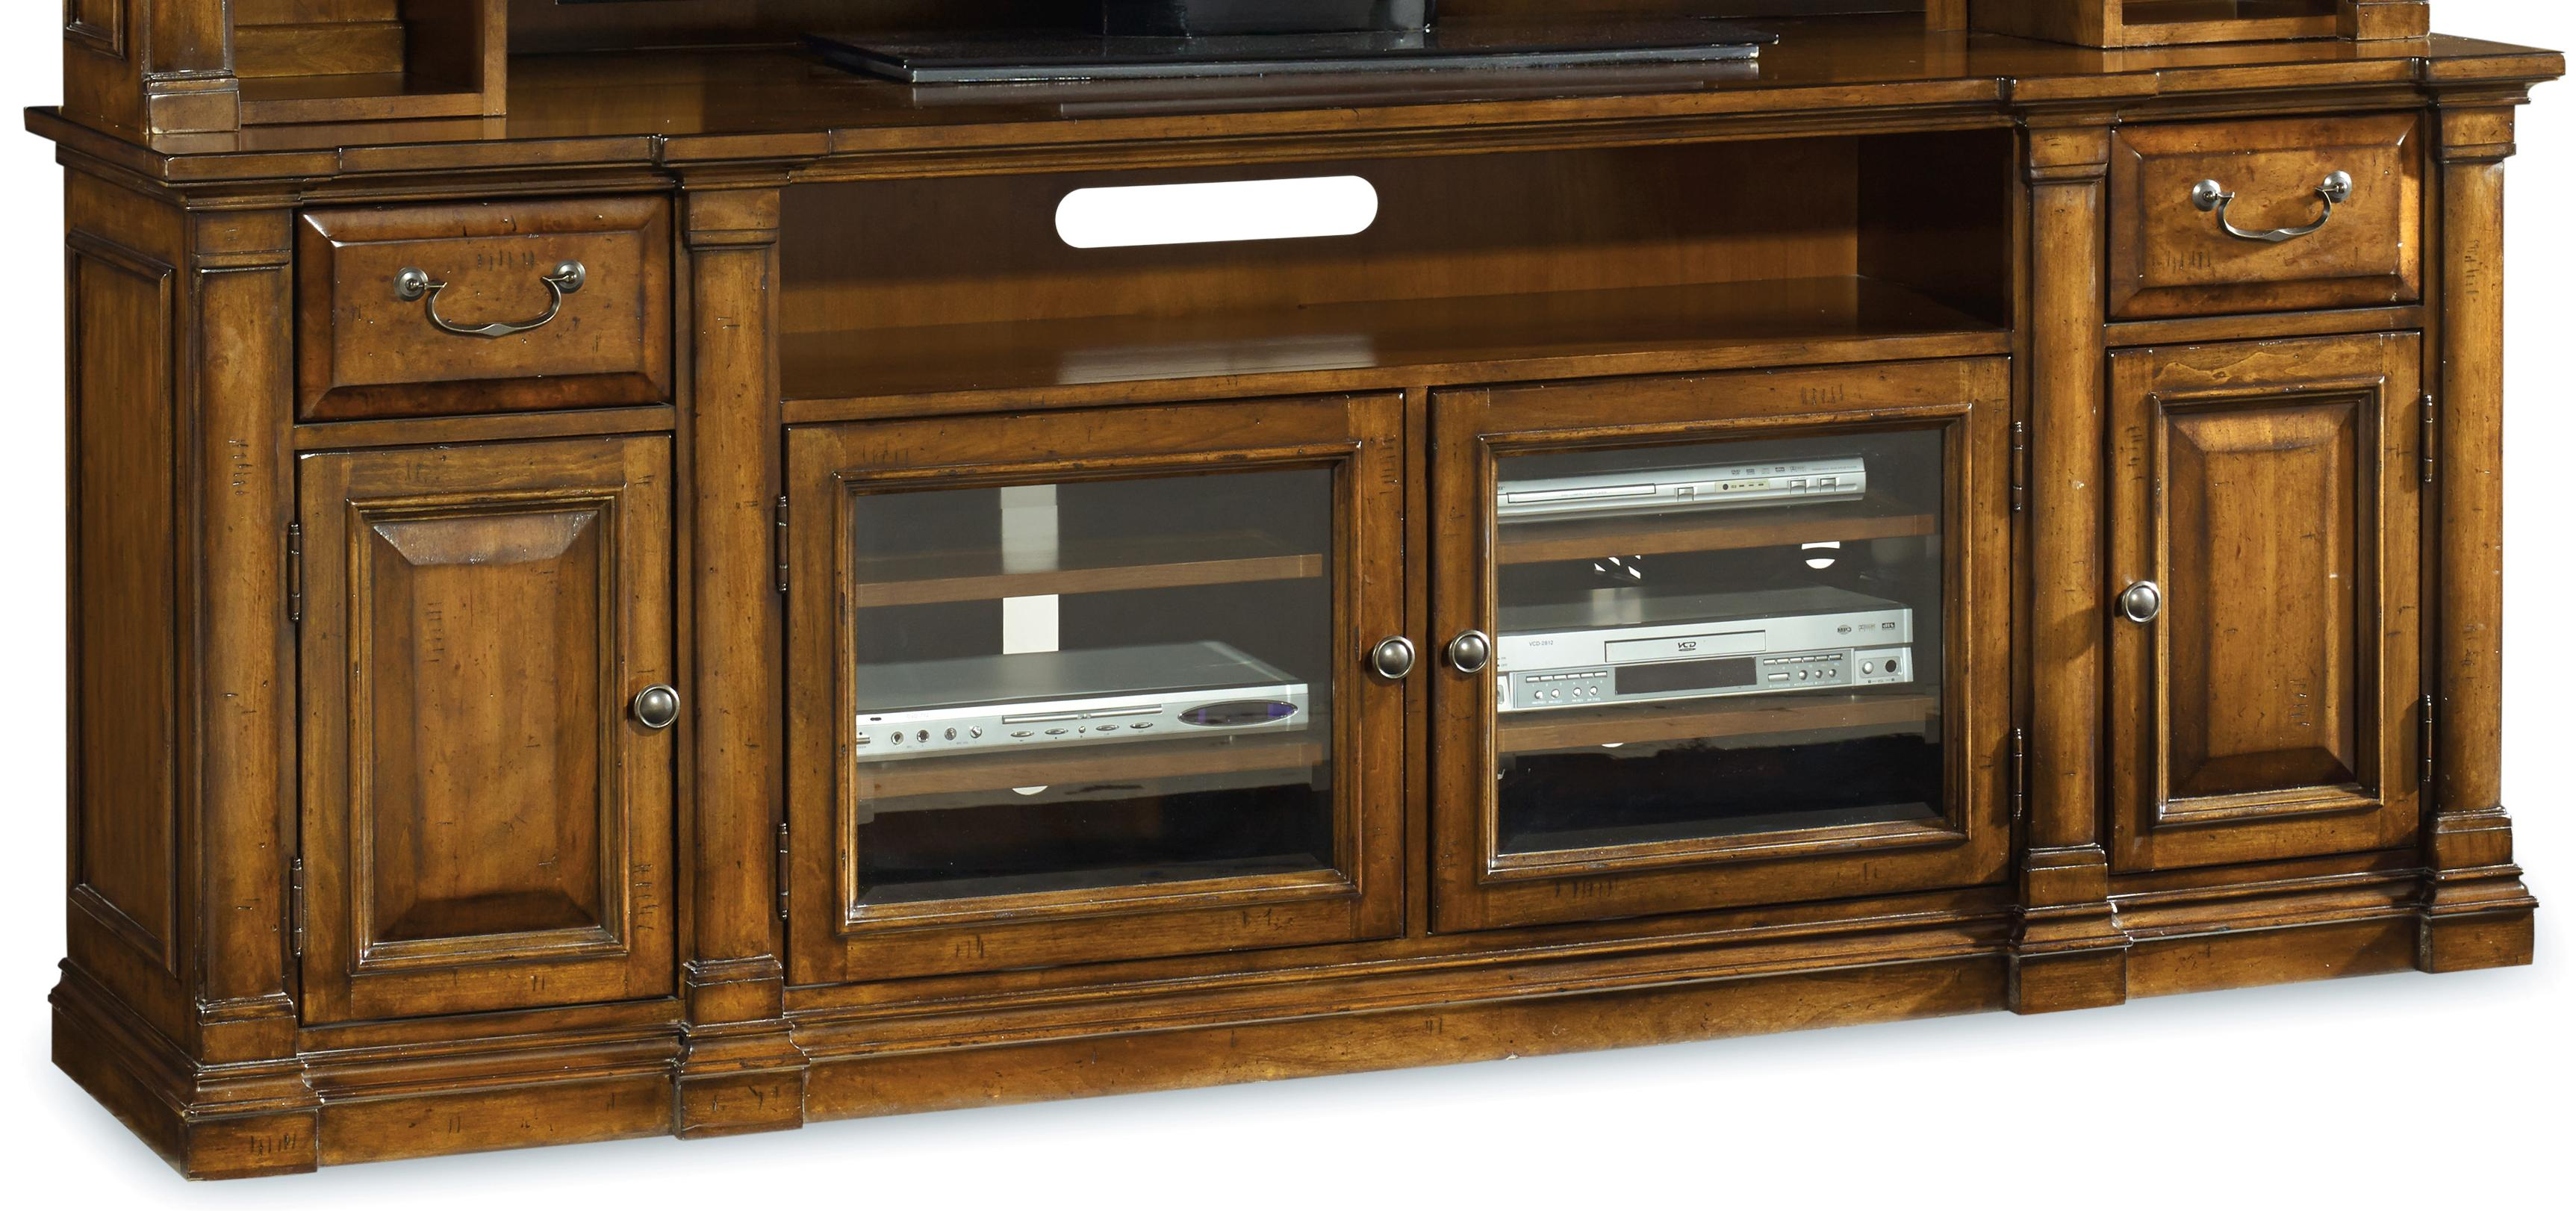 Hooker Furniture Tynecastle Entertainment Console - Item Number: 5323-55484